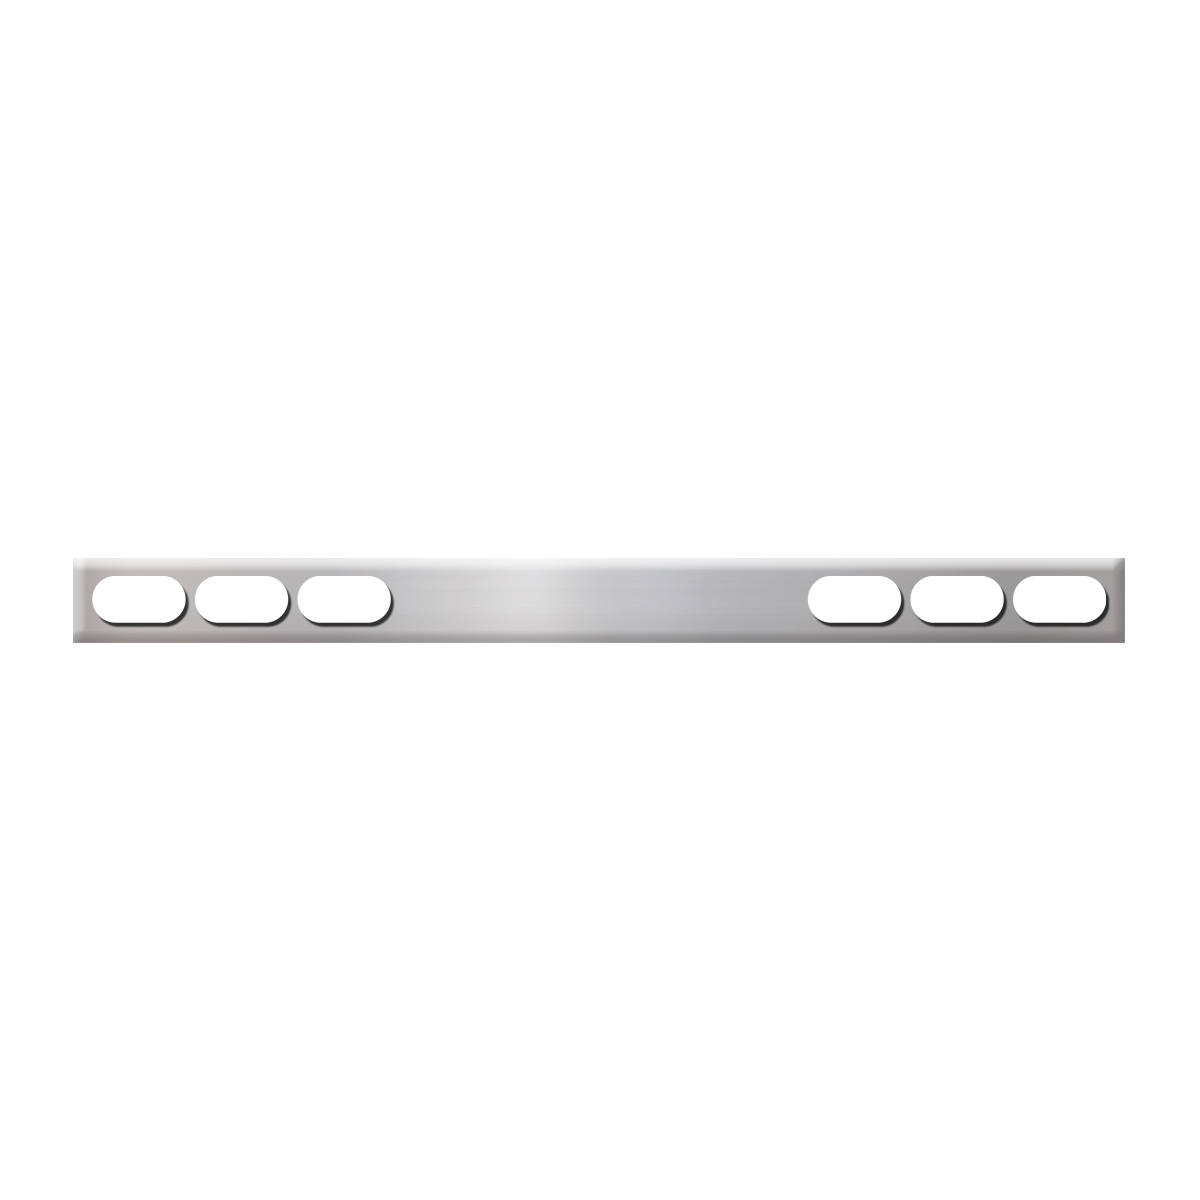 #80137 Stainless Steel One Piece Rear Light Bar Only